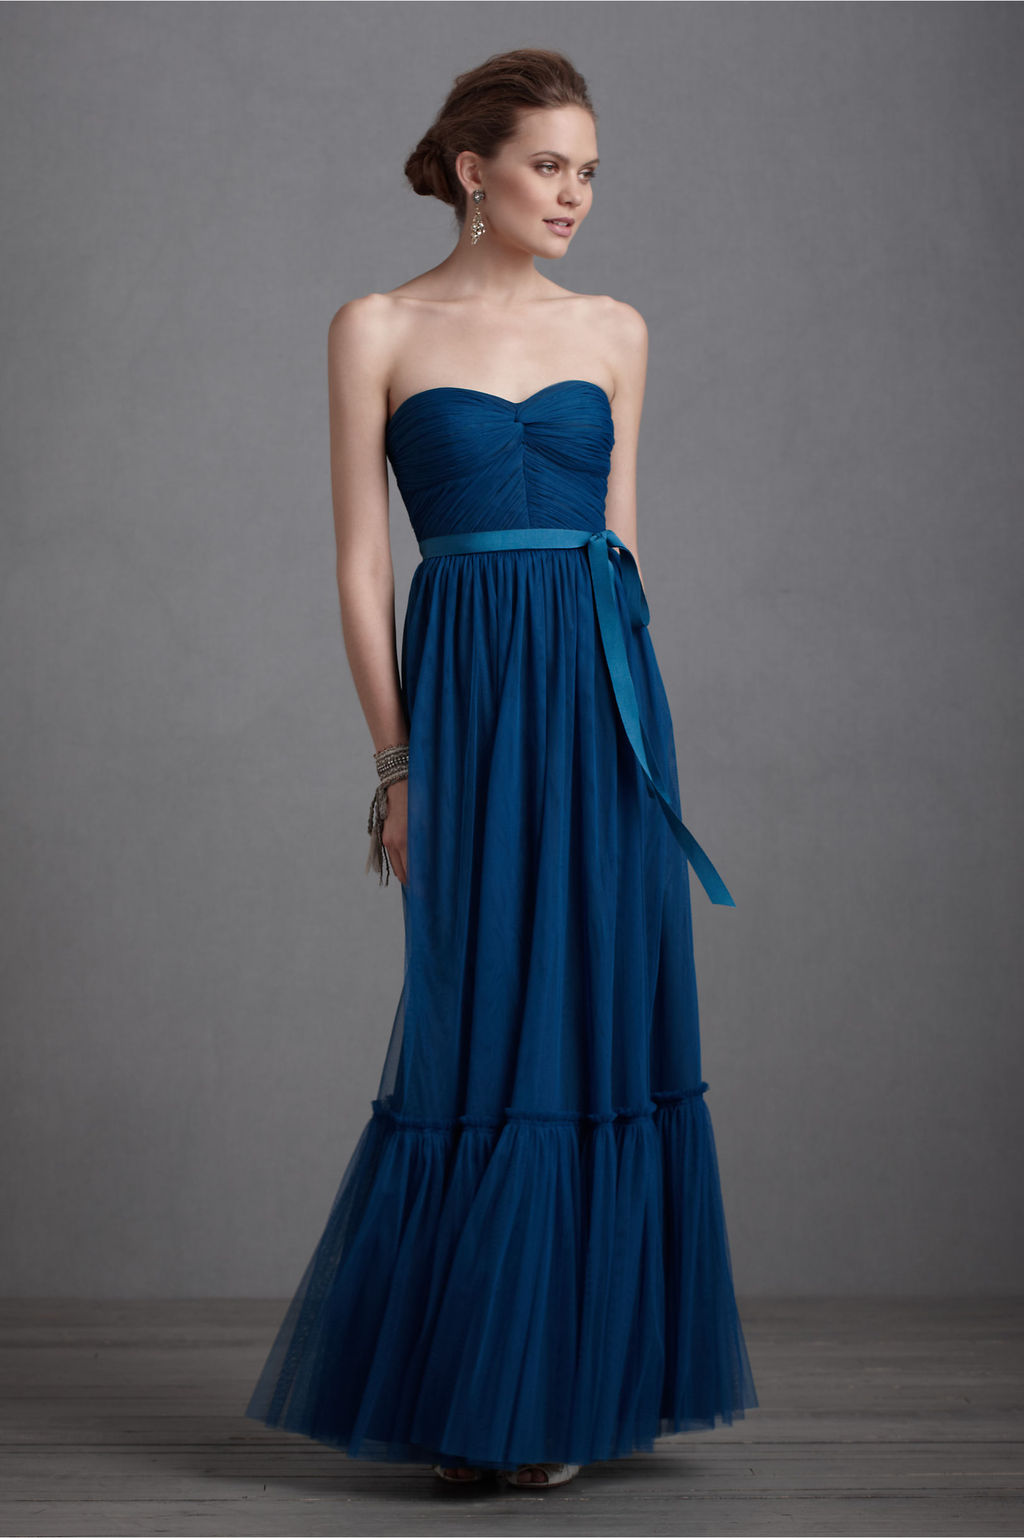 Elegant navy blue bridesmaid dress long gown bhldn for Blue long dress wedding